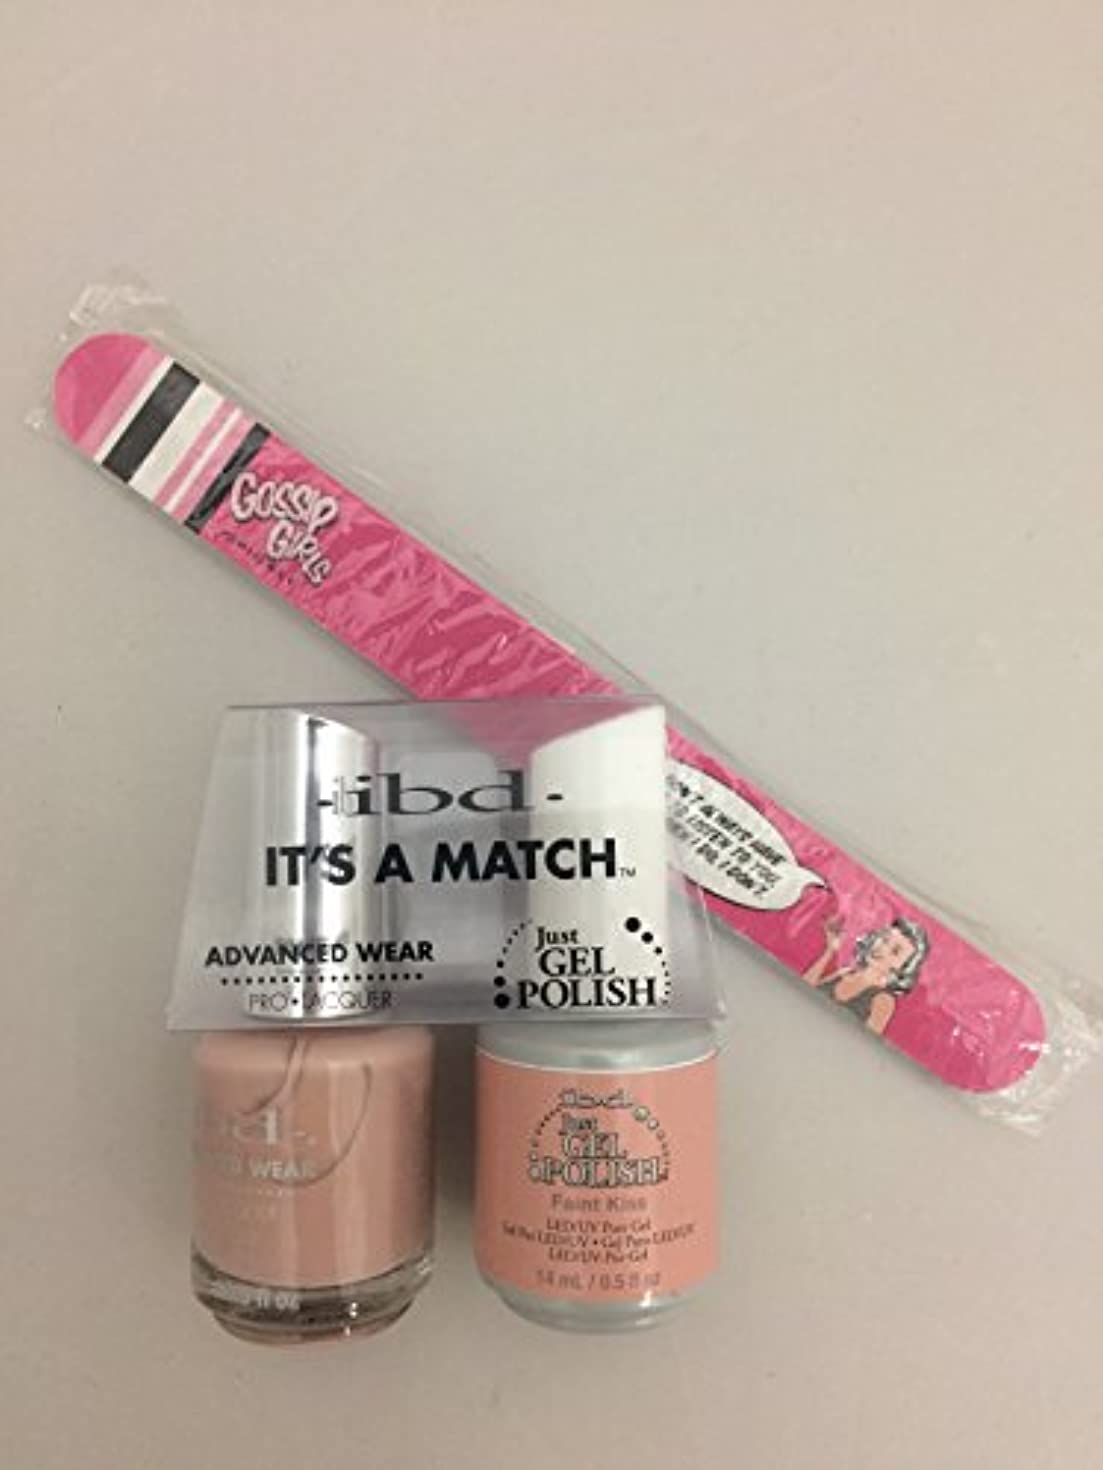 ibd - It's A Match -Duo Pack- Nude Collection - Faint Kiss - 14 mL / 0.5 oz Each